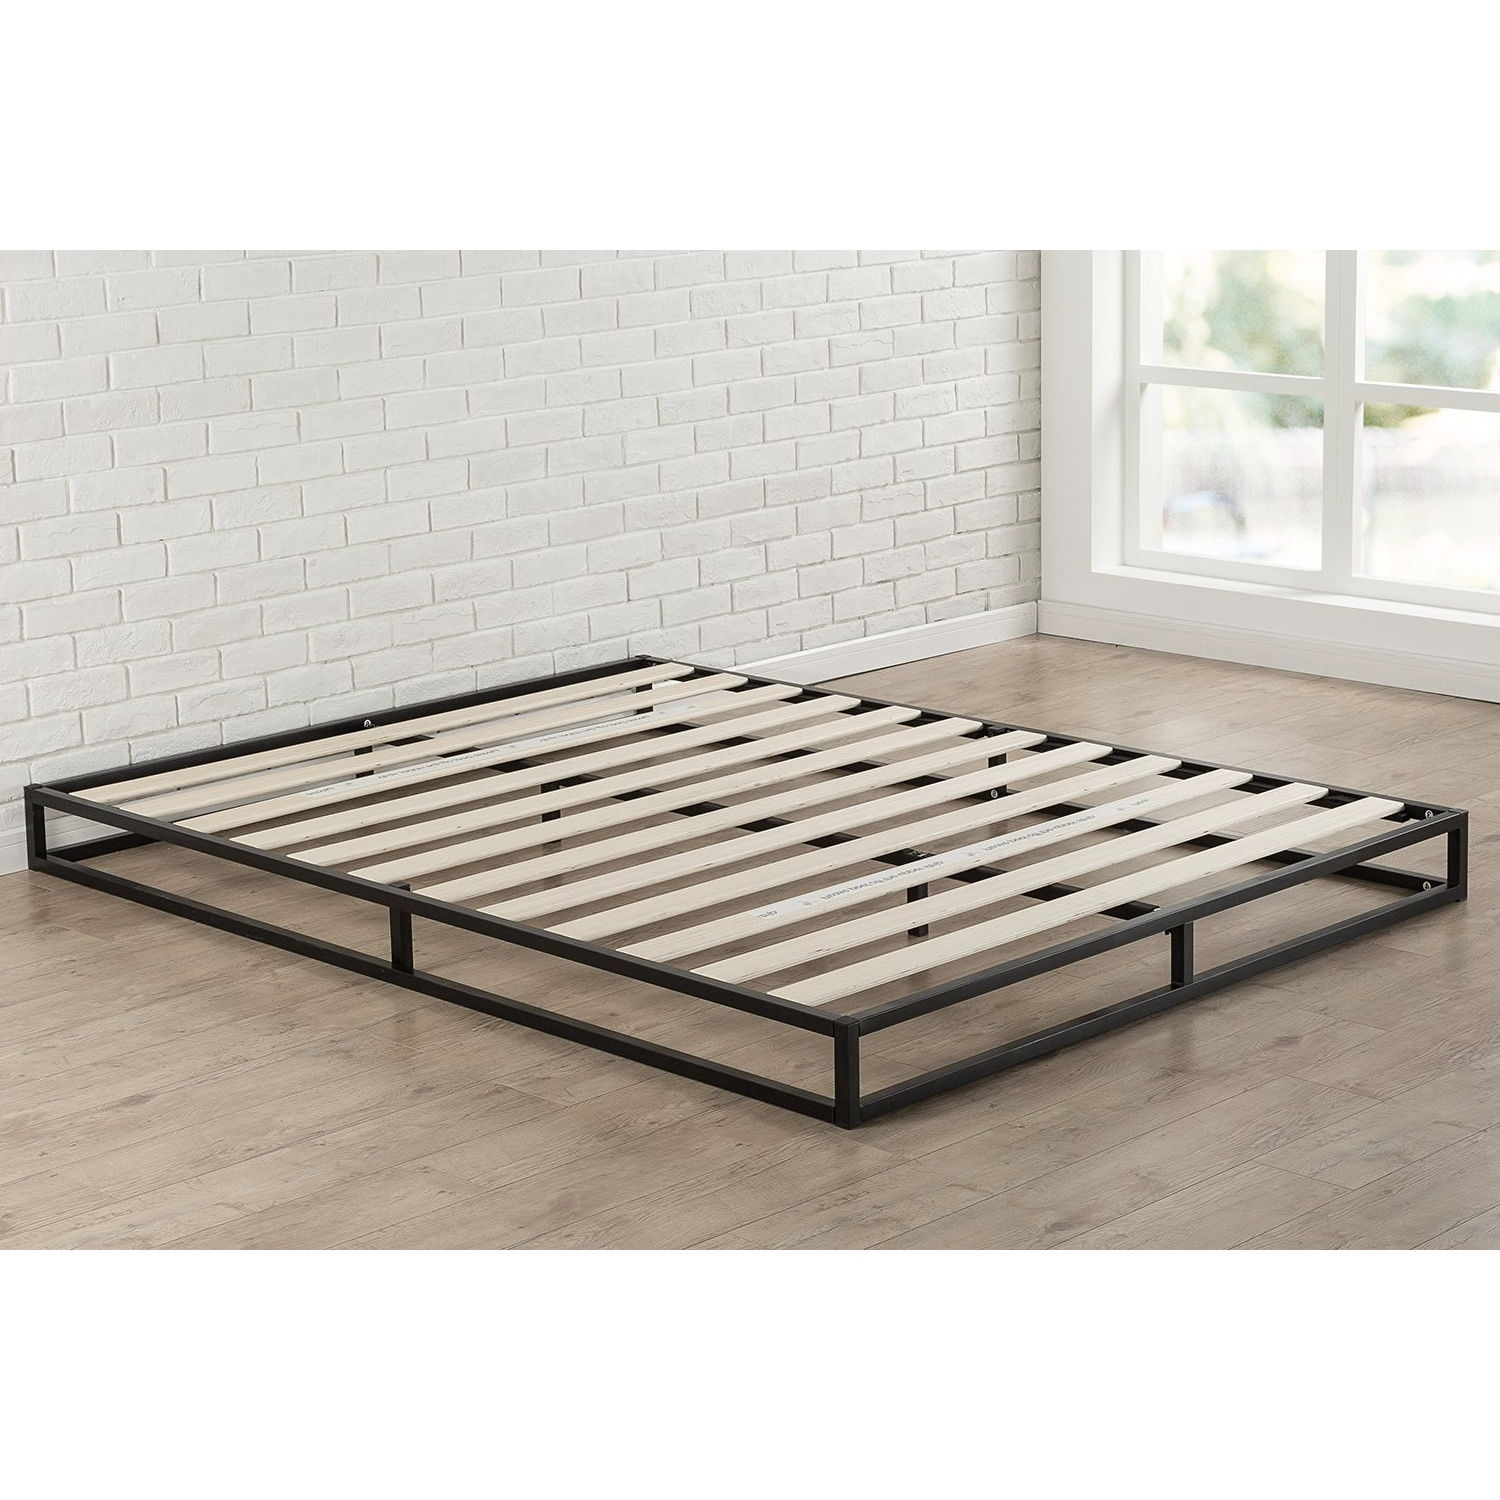 Amazing Low Profile Bed Frame Decoration